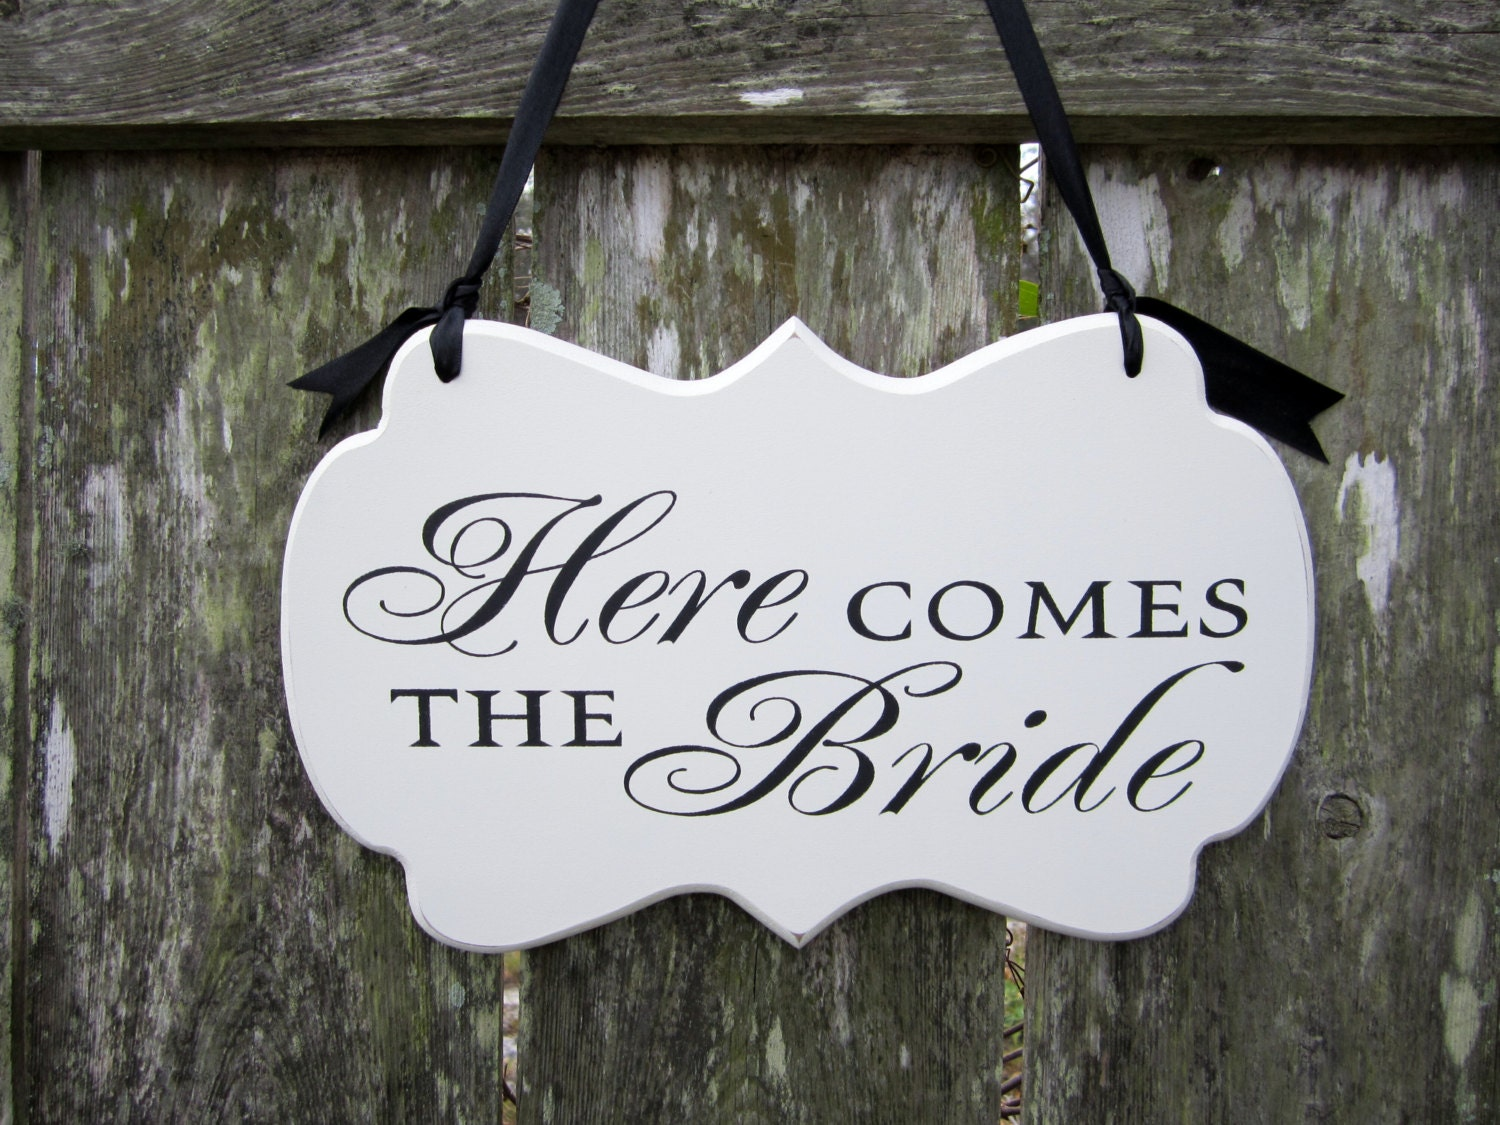 here comes the wedding sign painted wooden by